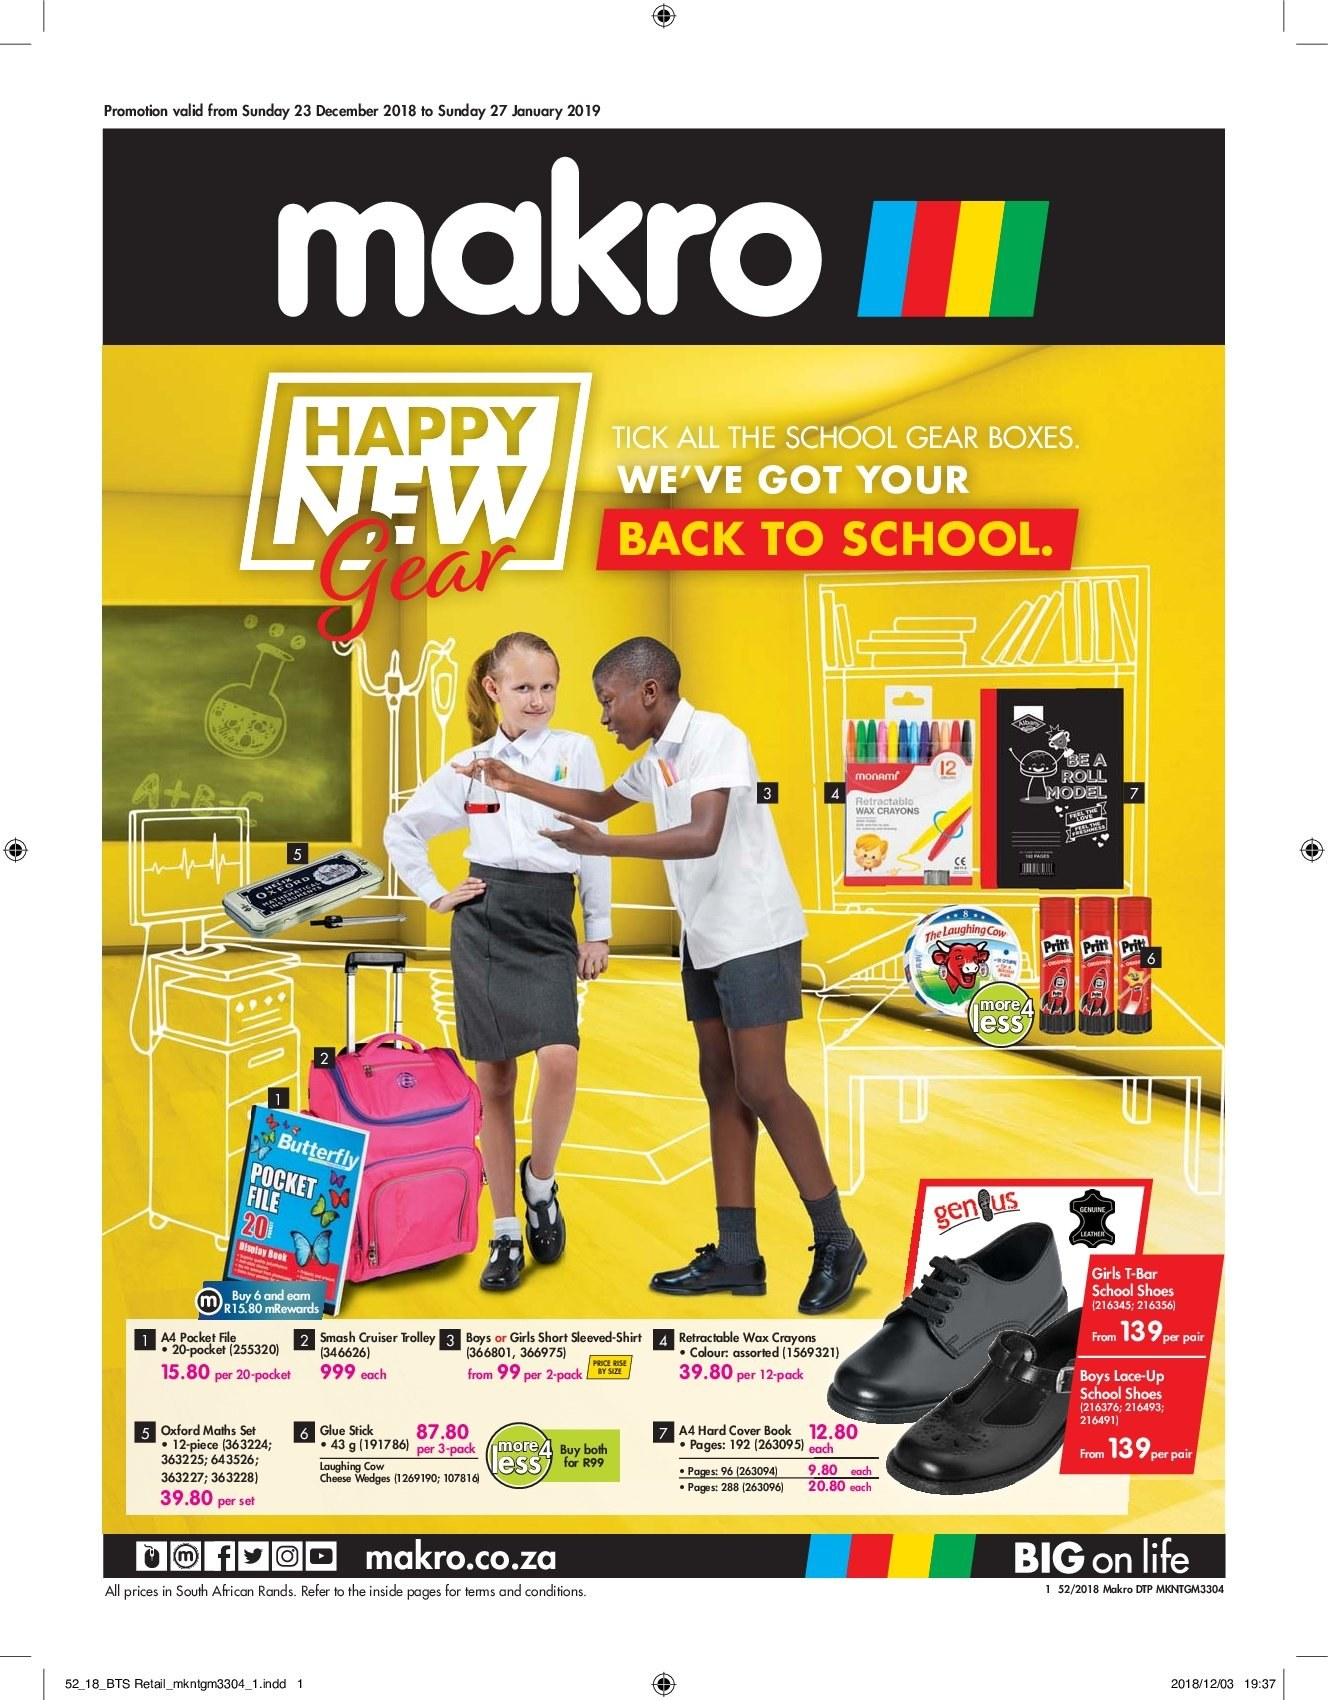 Makro special - 12.23.2018 - 01.27.2019 - Sales products - shirt, shoes, trolley. Page 1.